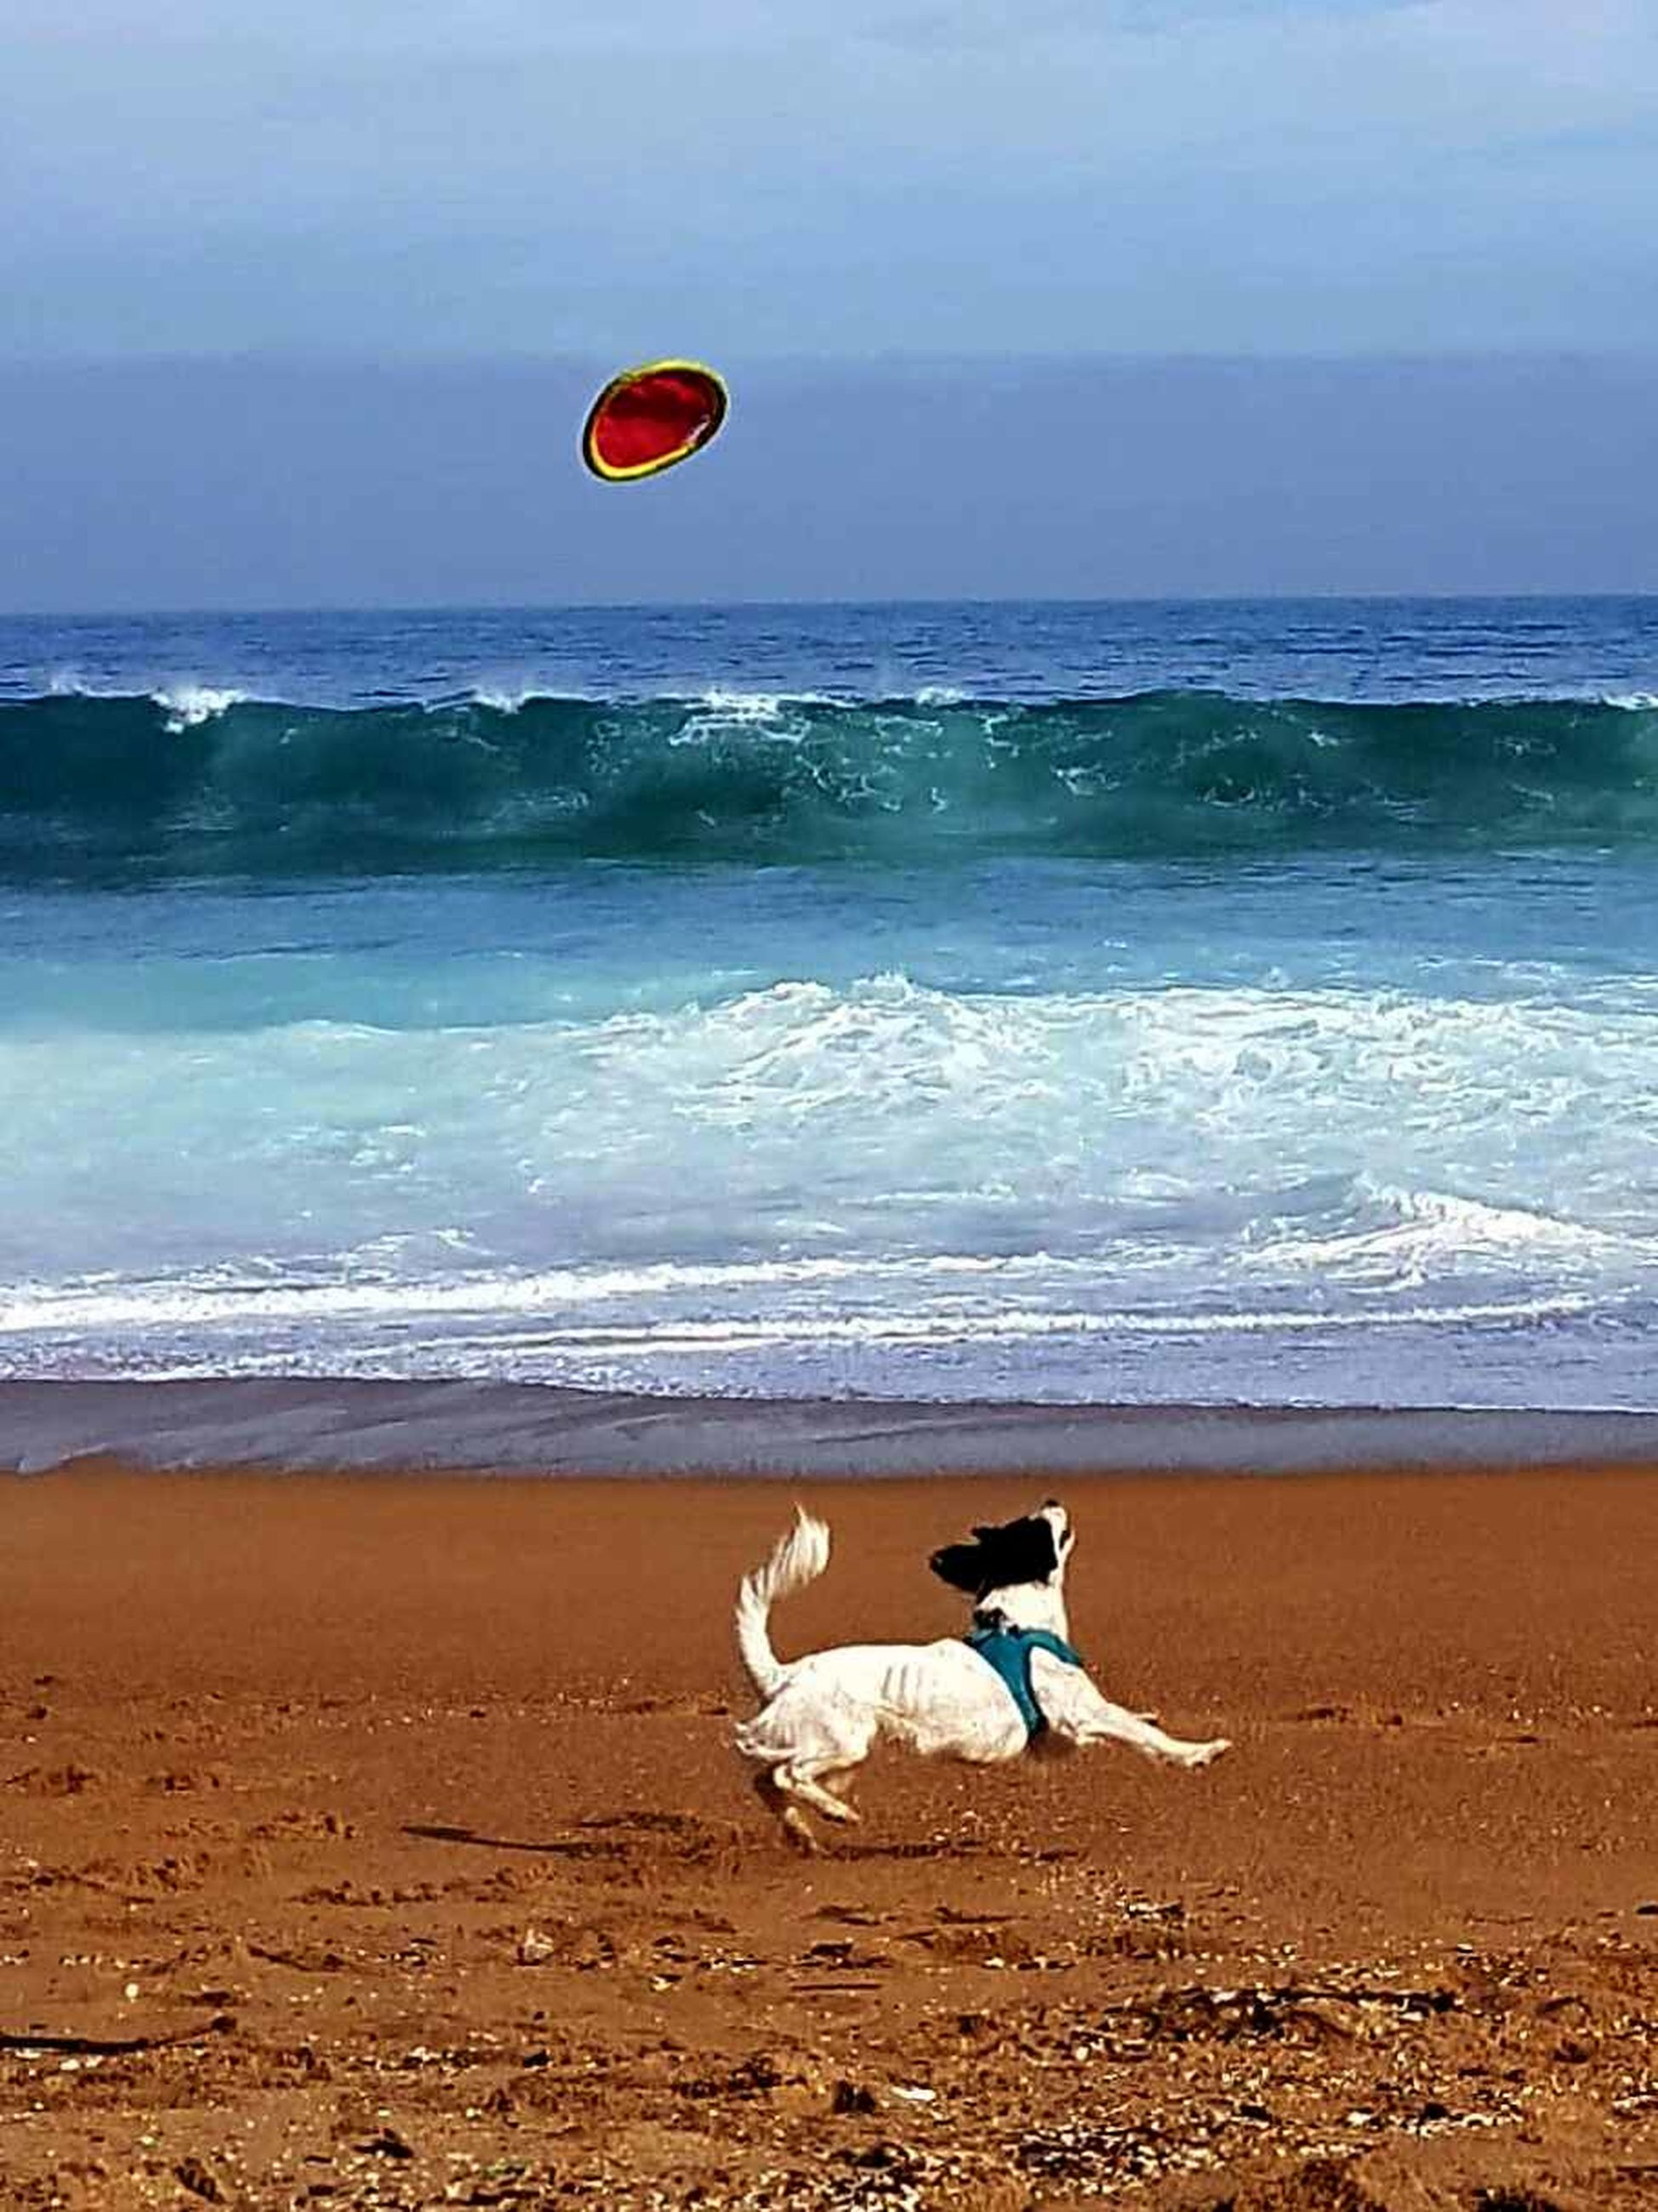 sea, beach, water, mid-air, wave, nature, horizon over water, sand, playing, motion, leisure activity, sport, outdoors, day, one person, beauty in nature, sky, flying, basketball - sport, animal themes, people